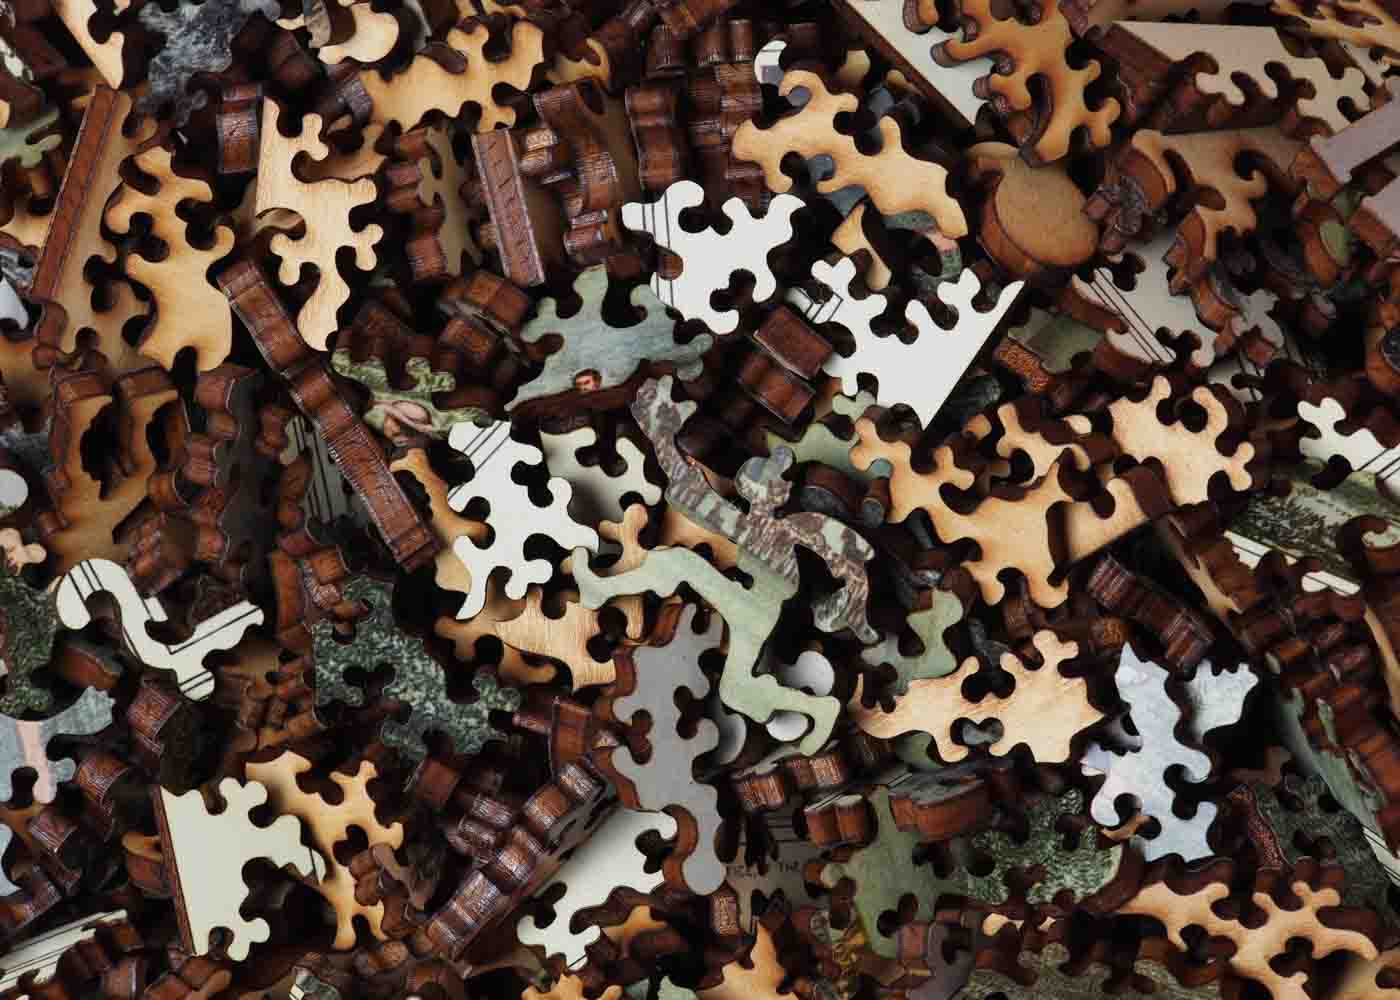 A wooden jigsaw puzzle is a great gift for puzzle-loving peeps.